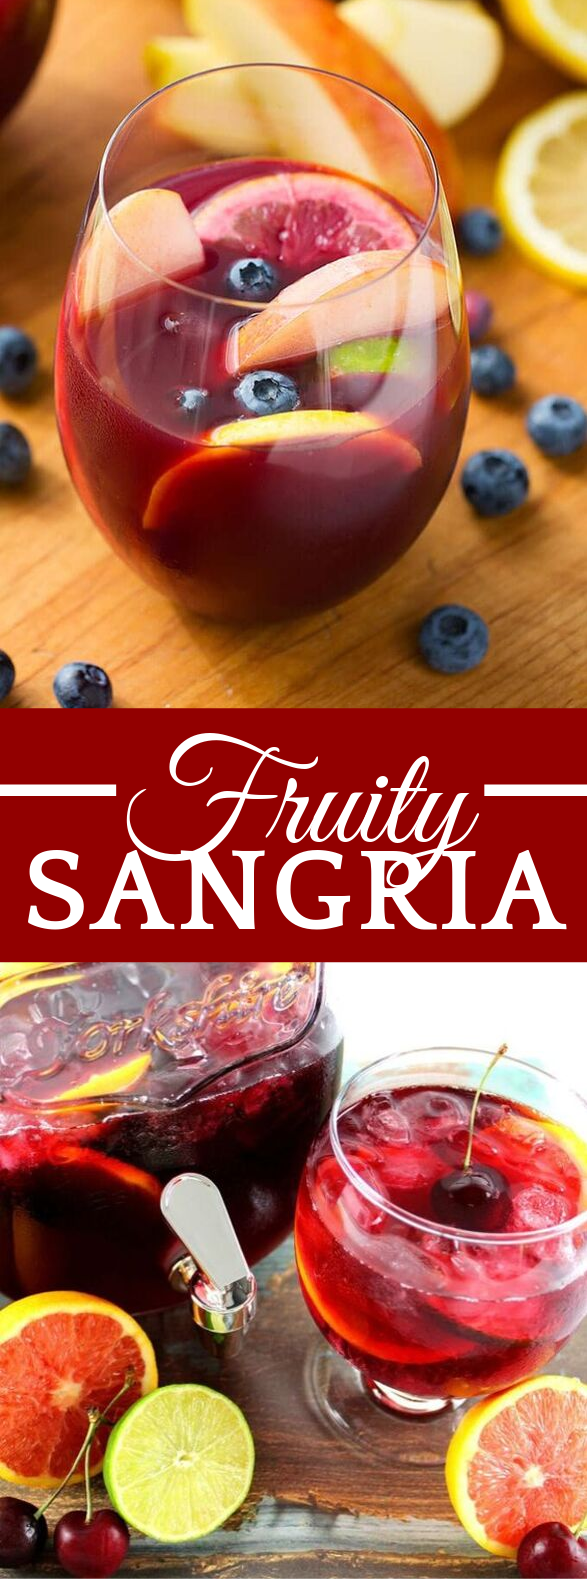 FRUITY SANGRIA RECIPE #drinks #punch